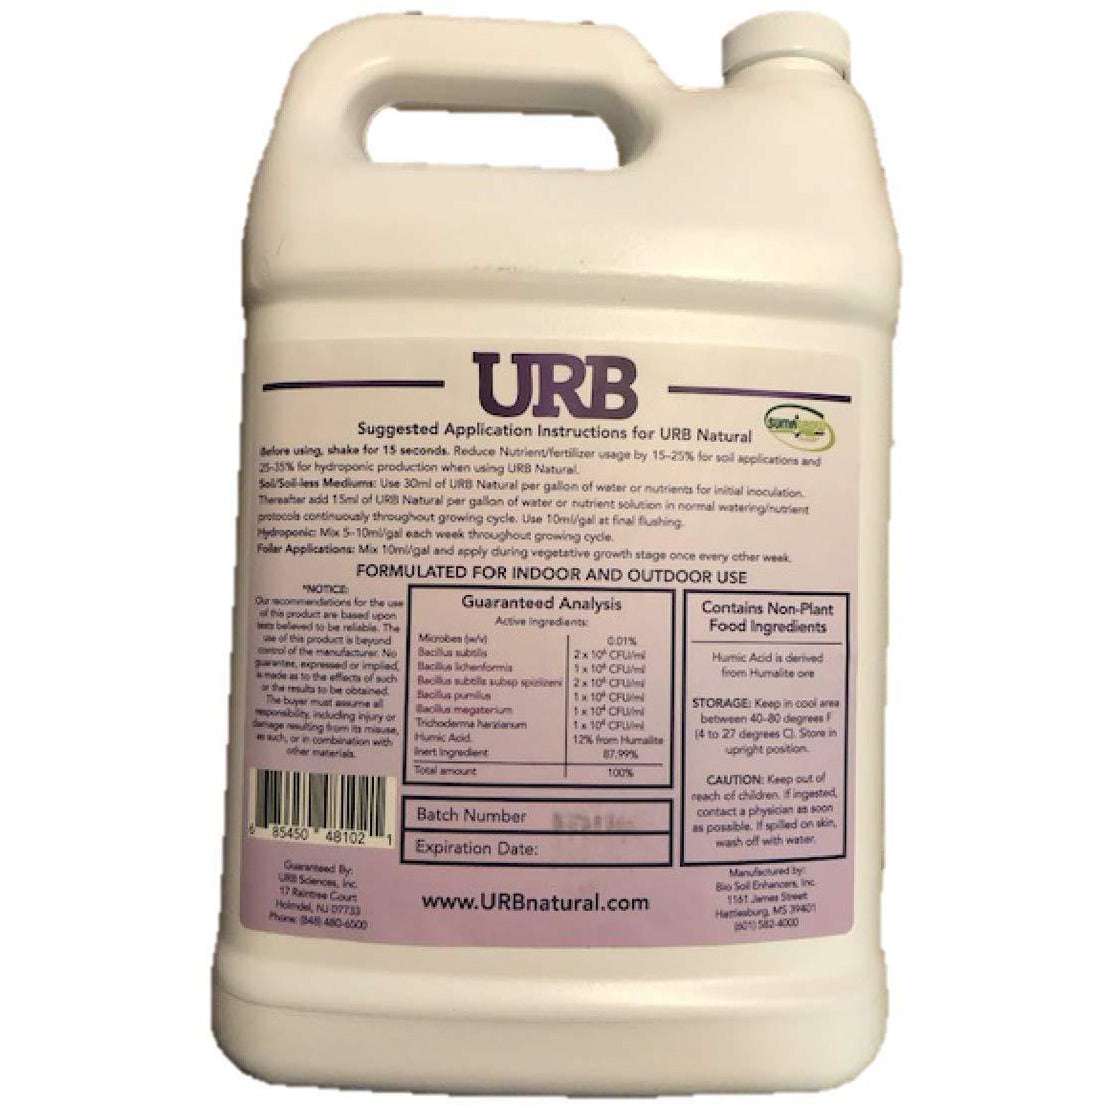 URB Natural 4 Liters Microbial Inoculant legalizeURB